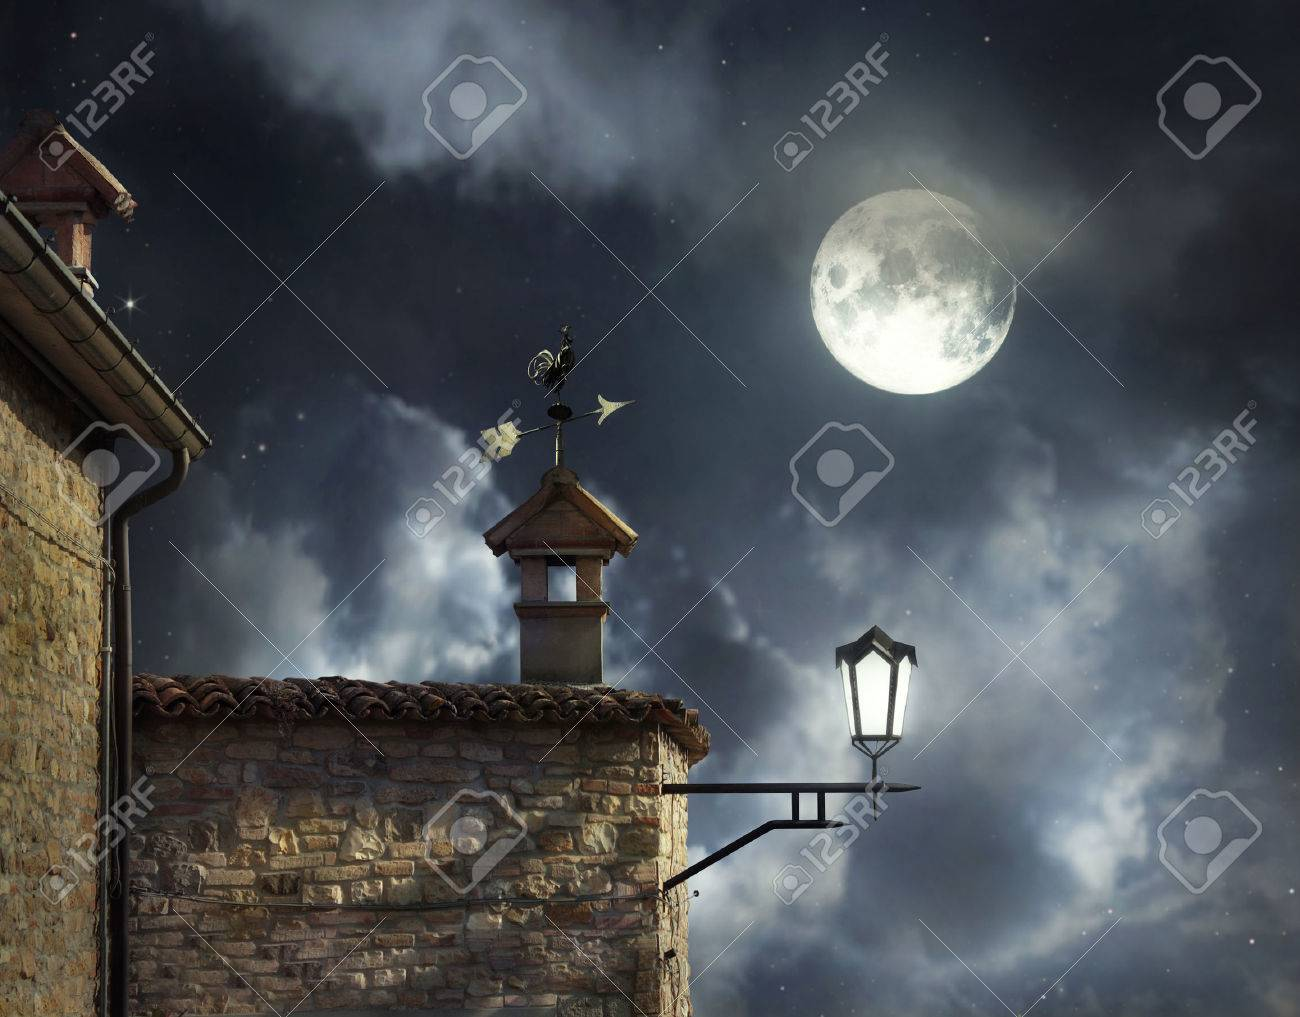 Antique roofs with weather vane rooster and chimneys in a beautiful night sky with full moon and clouds - 38616860